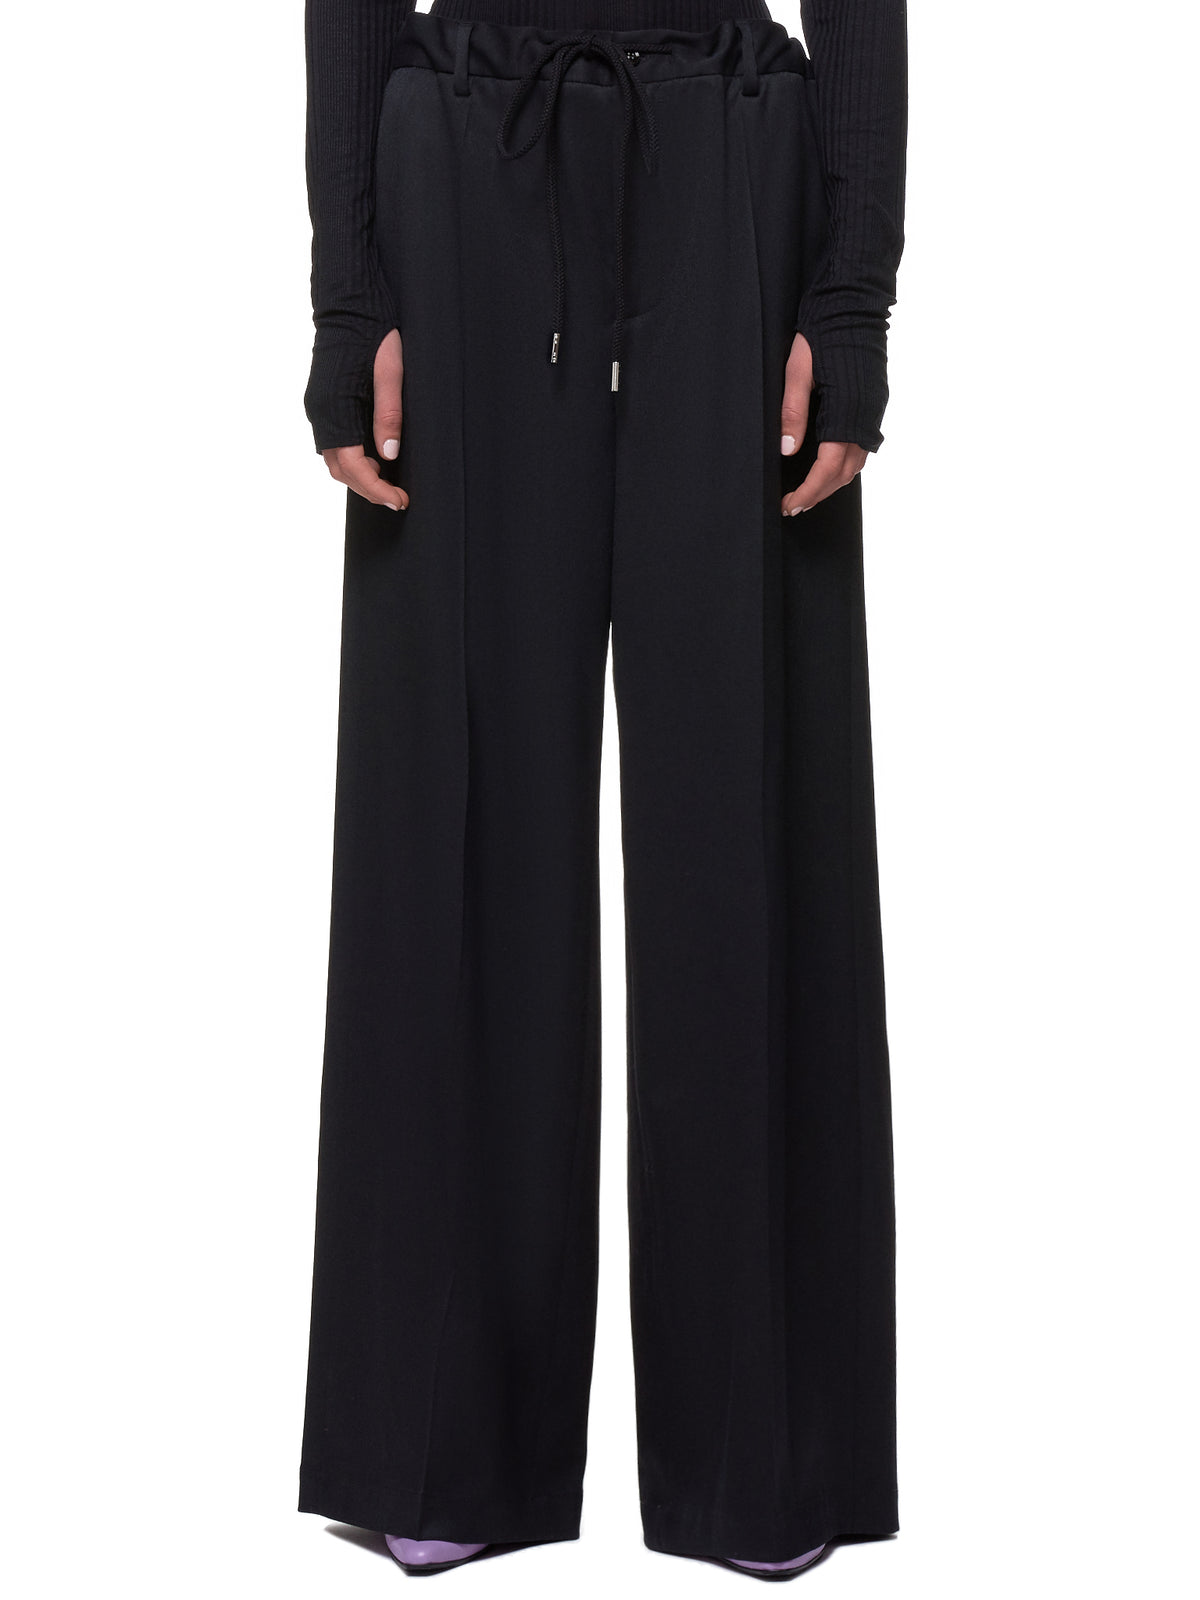 Cinch-Waist Trousers (S52KA0205-S47848-BLACK)